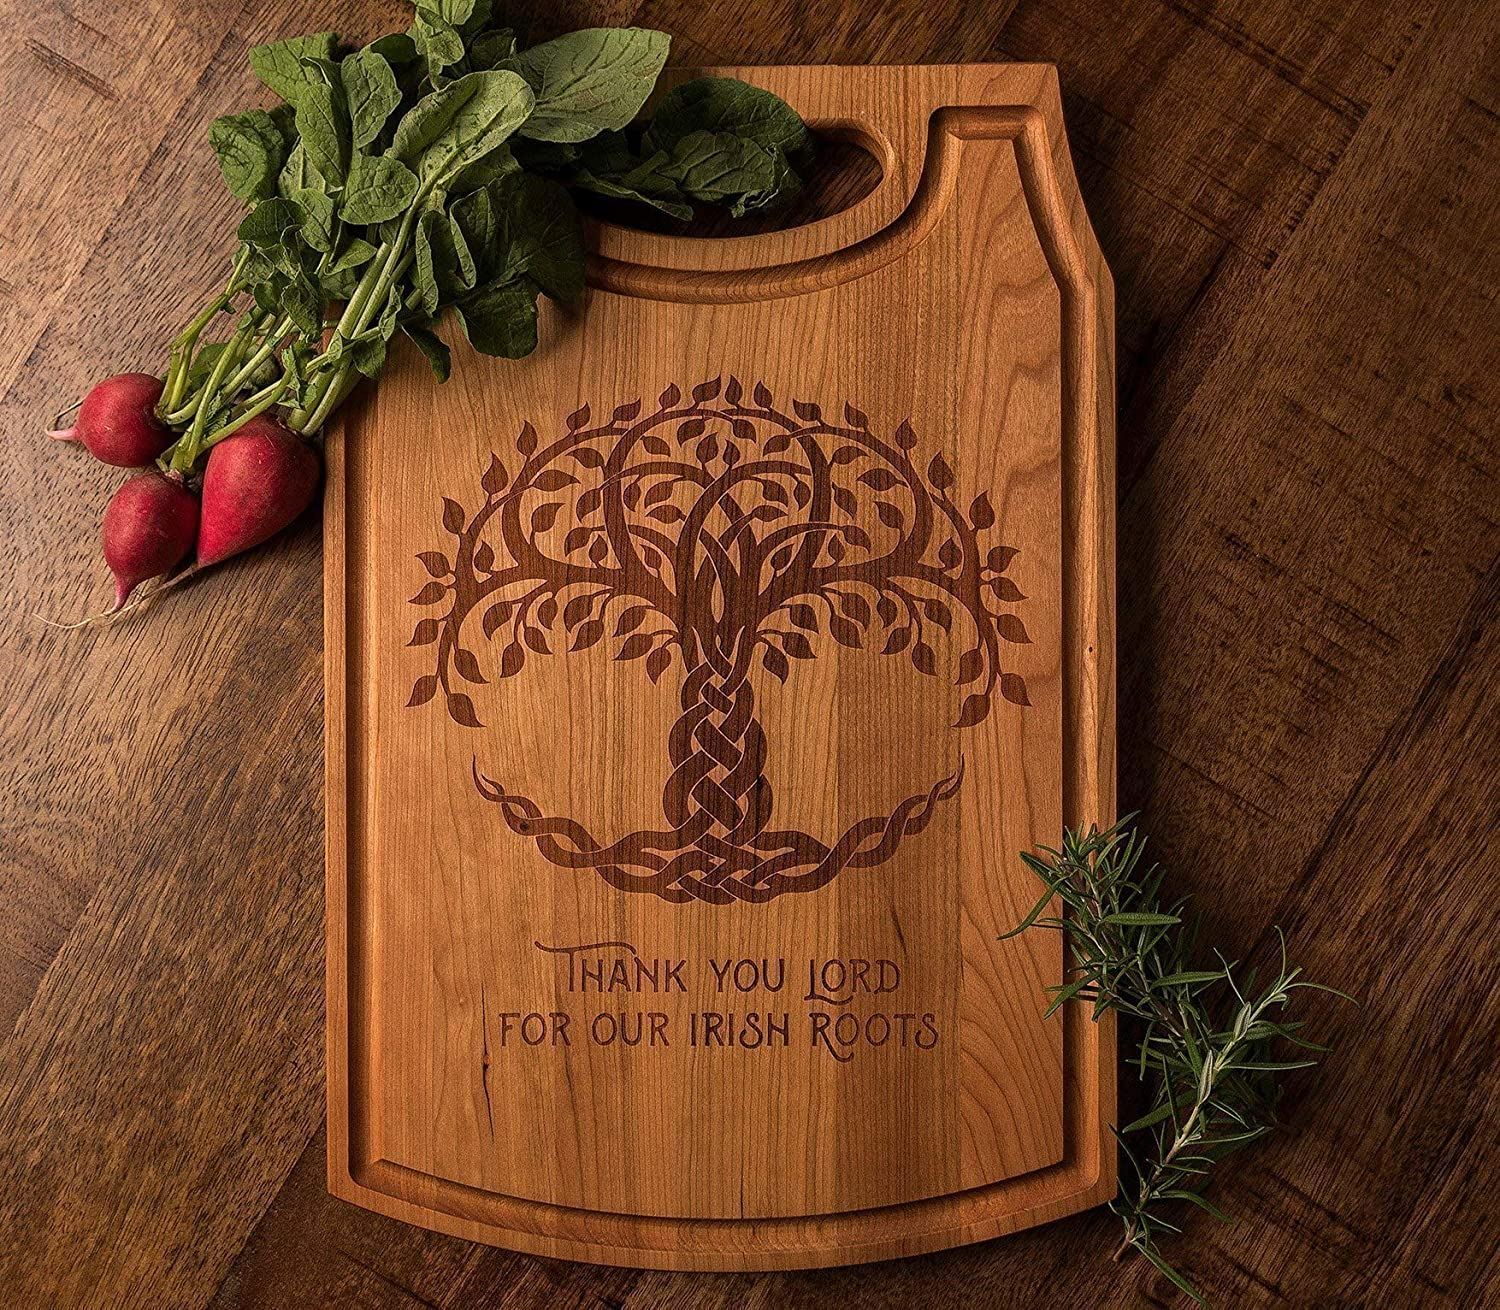 Engraved Wood Cutting Board with Celtic Tree of Life ** FREE DOMESTIC ECONOMY SHIPPING **